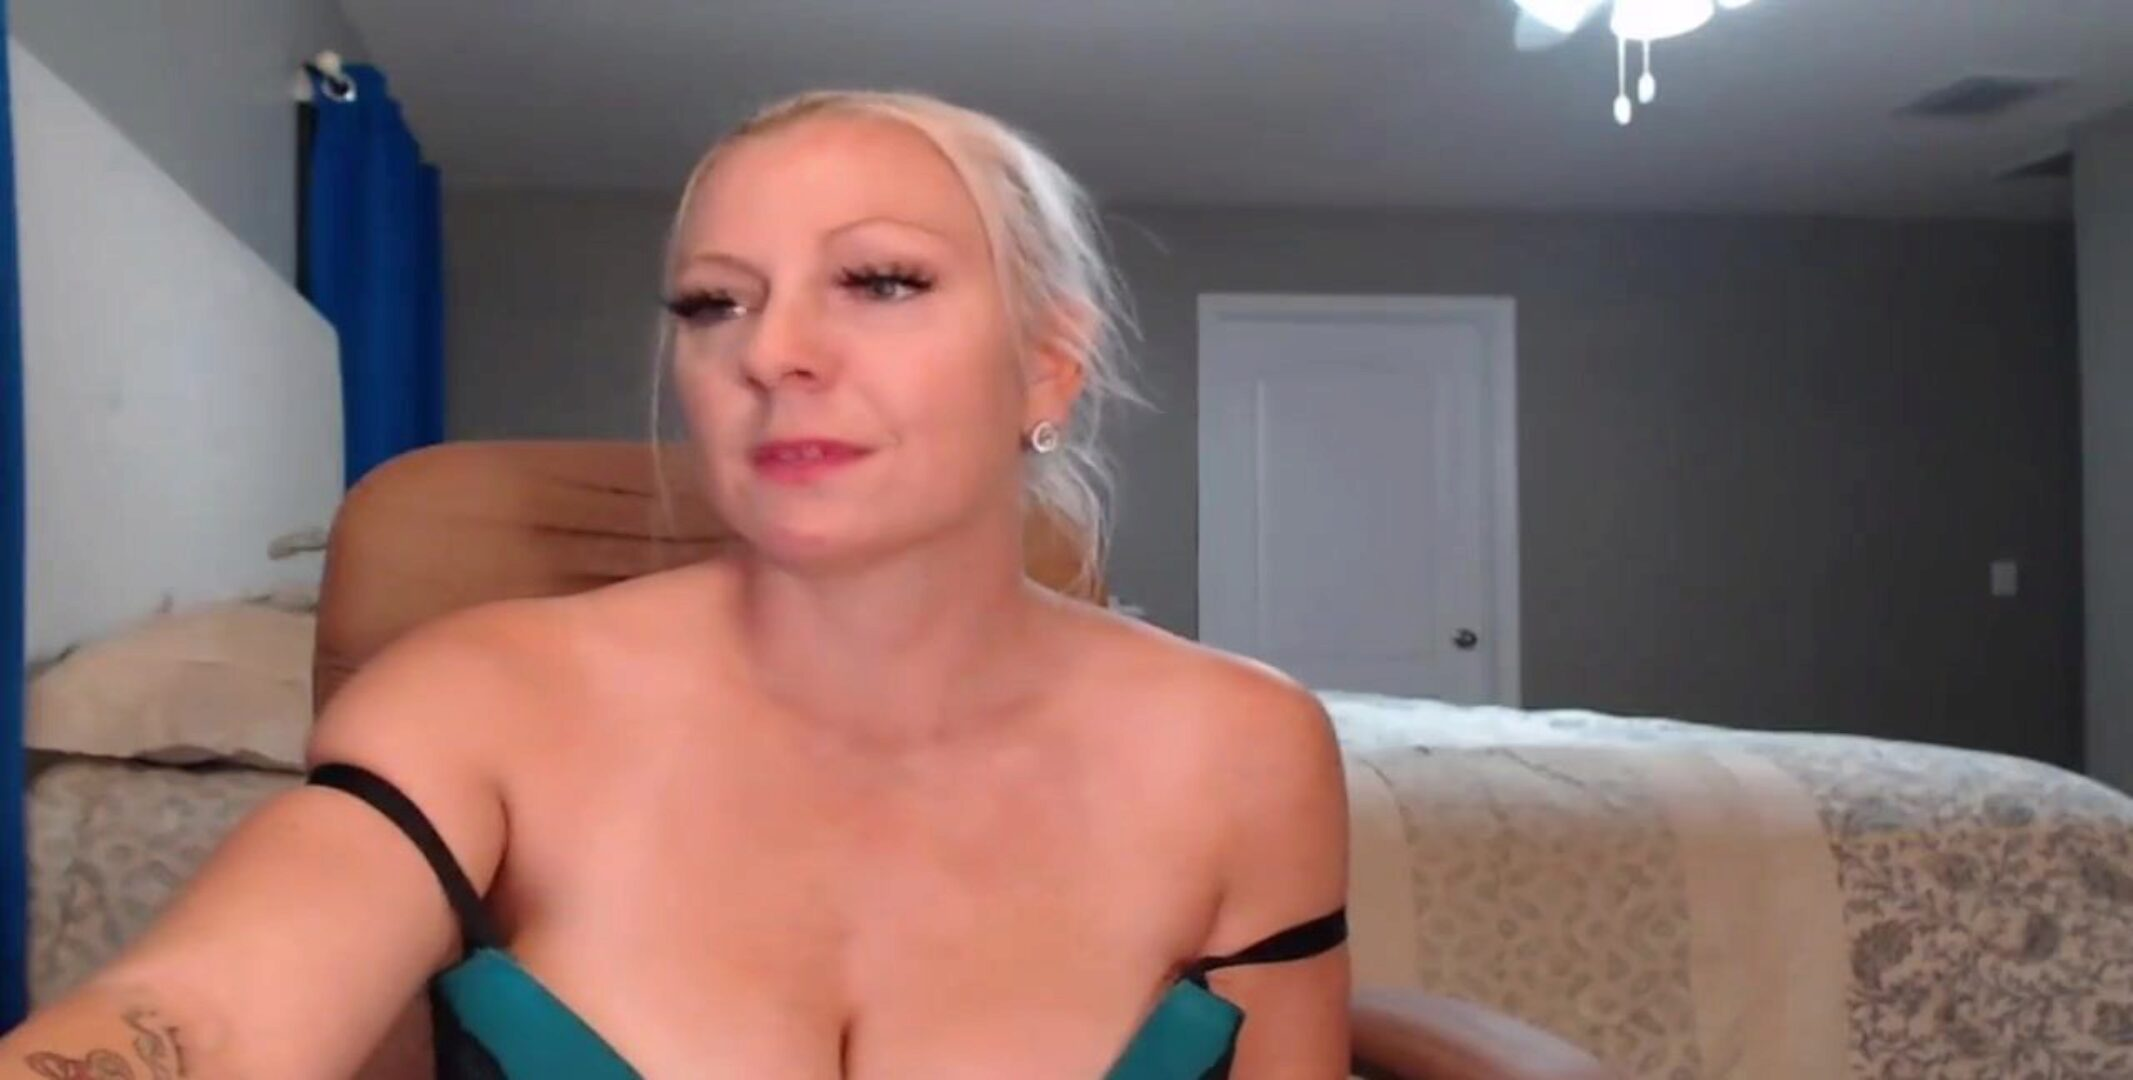 Blonde Cougar Big Natural Tits Deepthroats her Toy